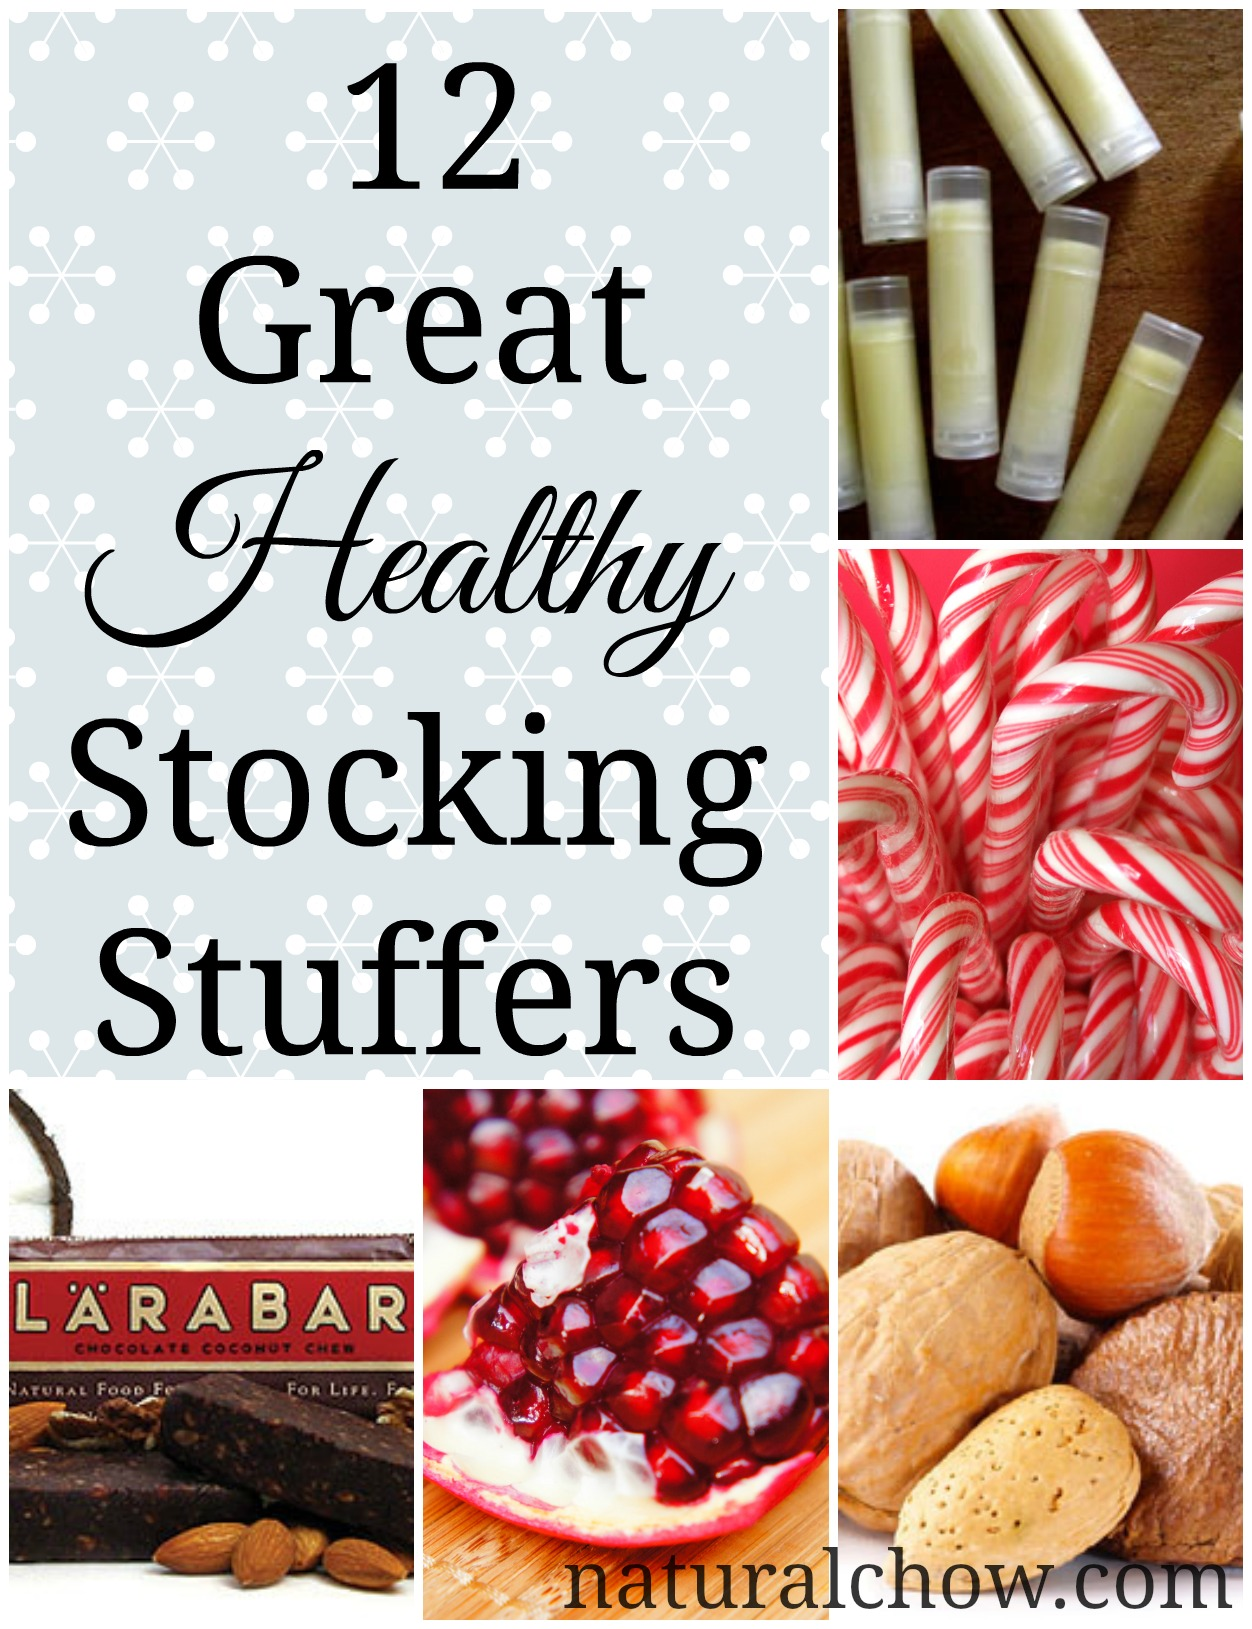 12 Great Stocking Stuffers